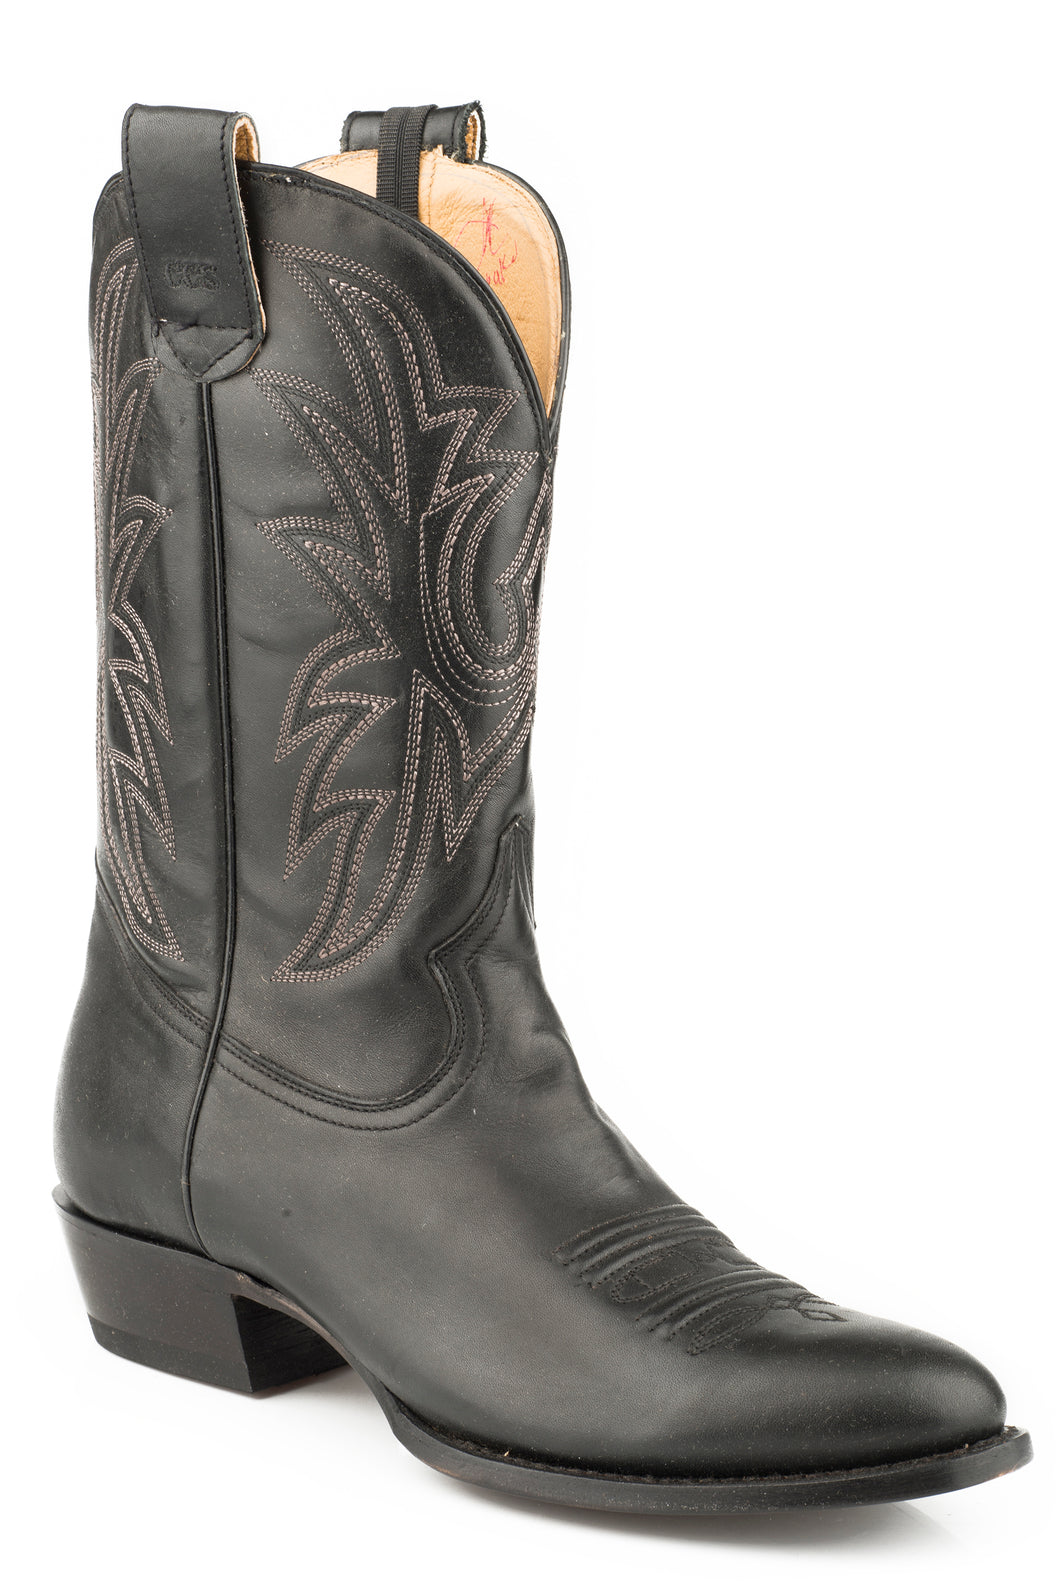 Score Special Boot Mens Boot Black Leather